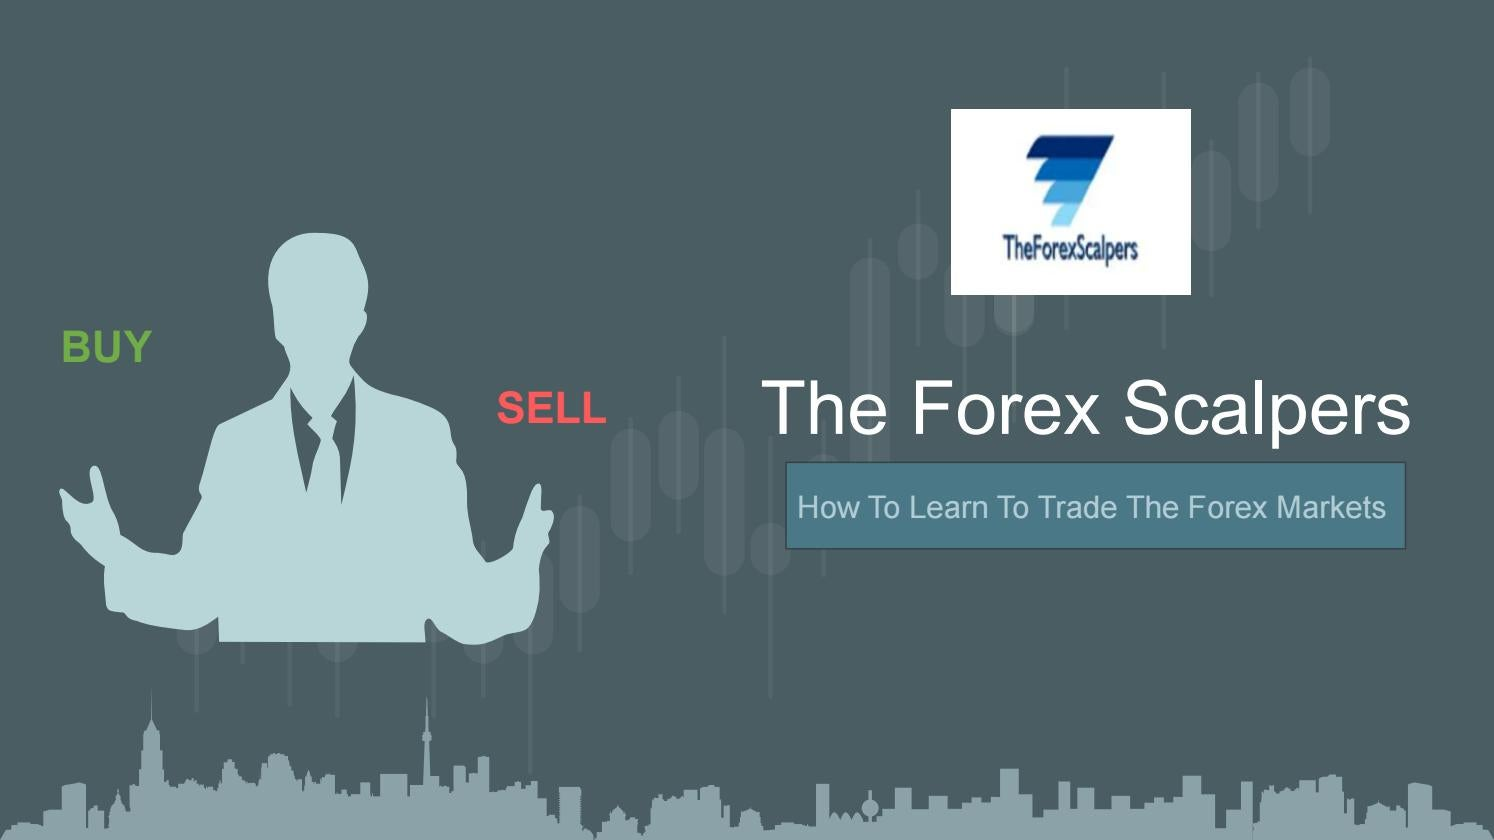 How To Learn Trade The Forex Markets